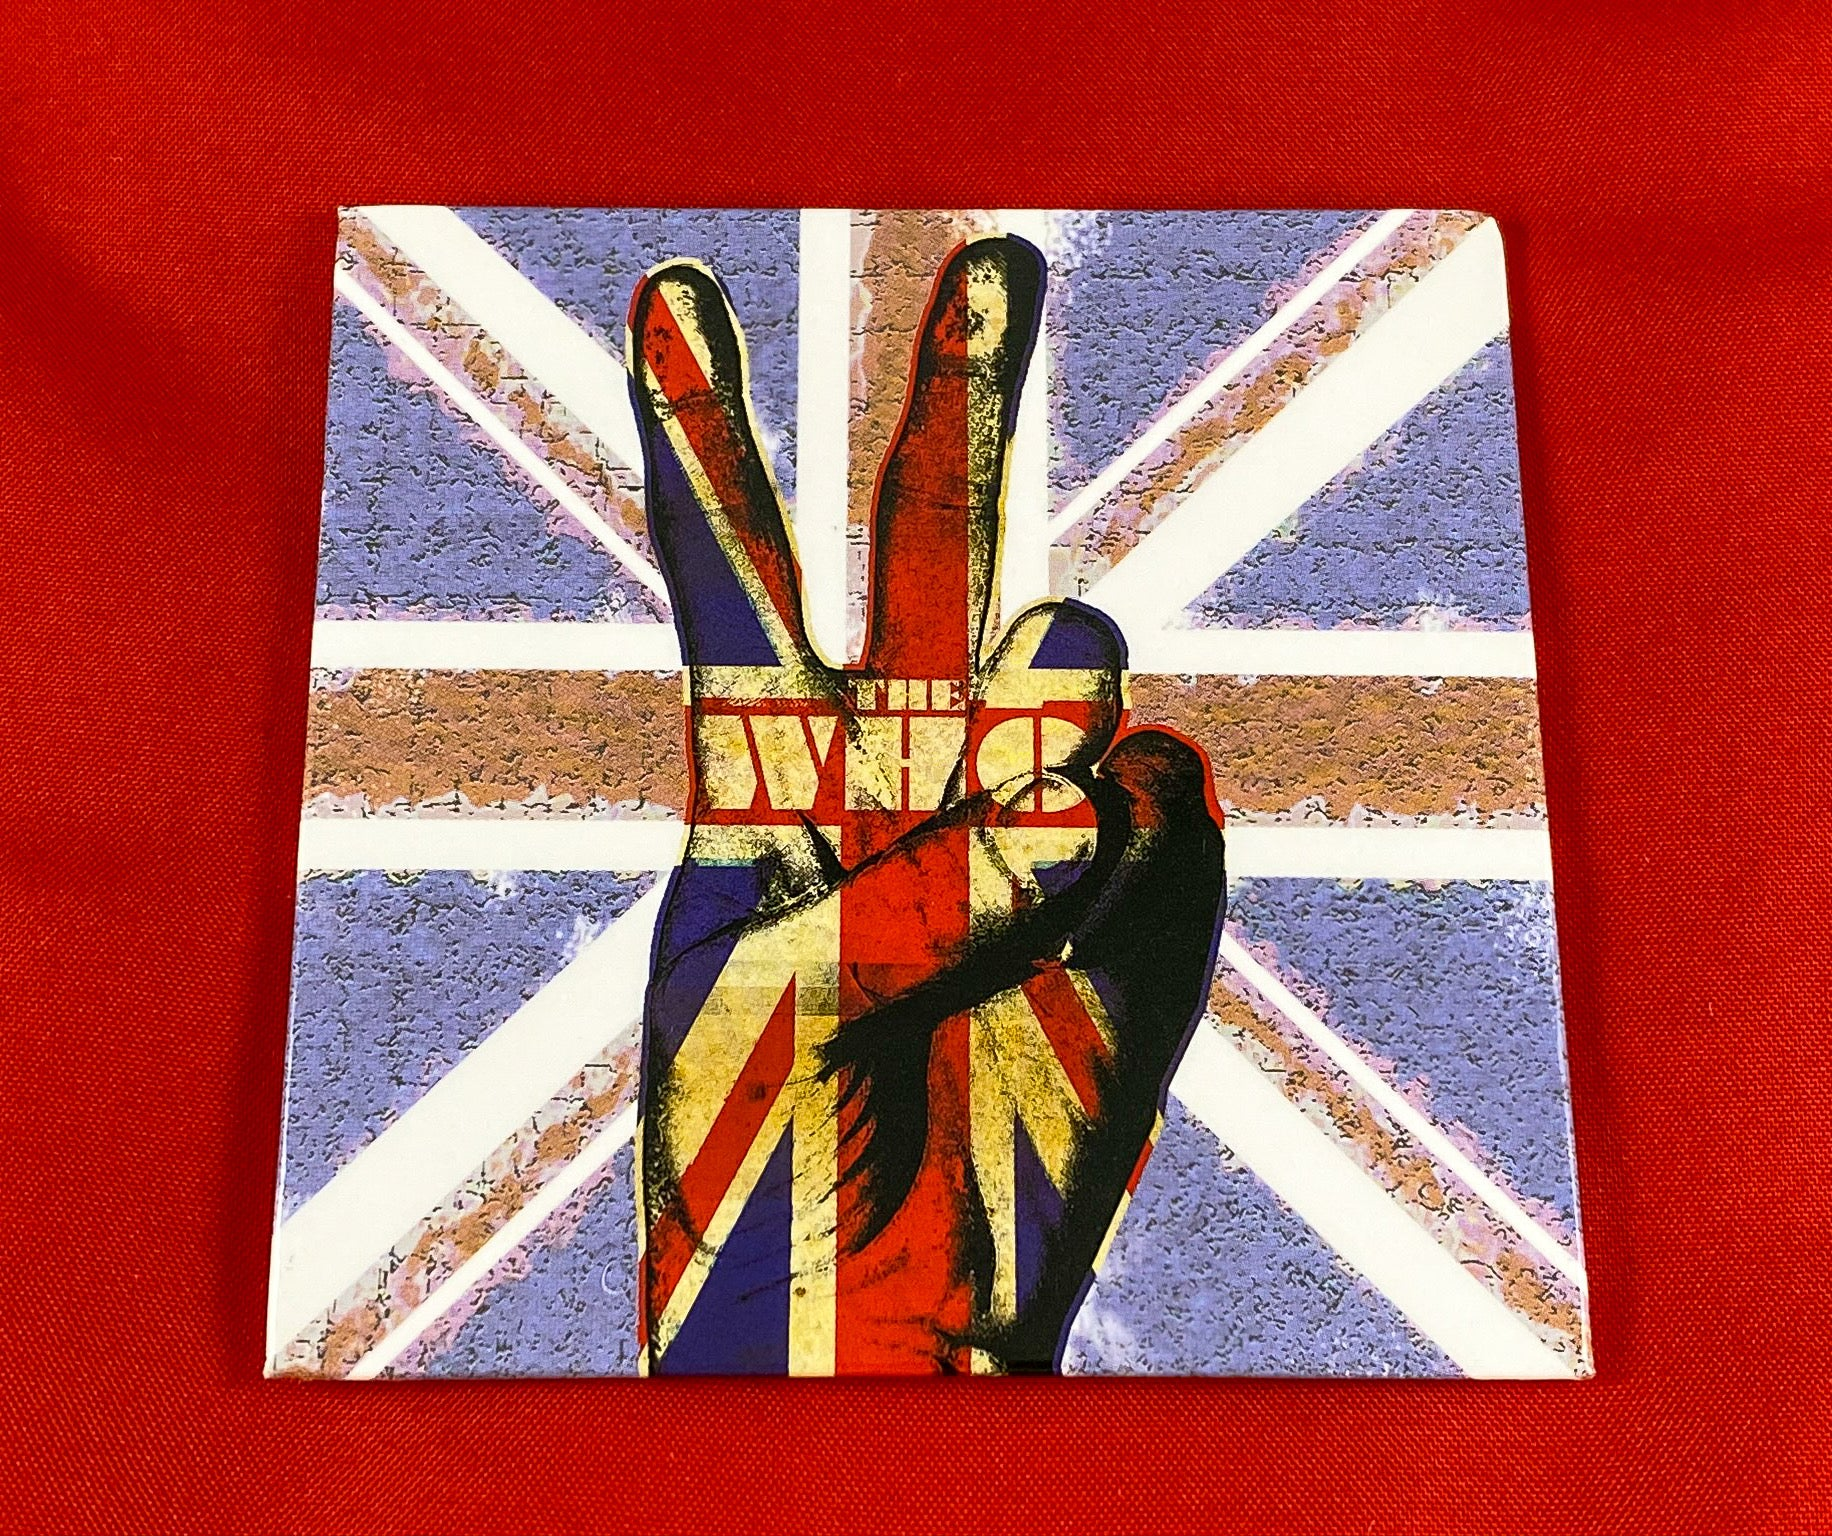 Let it be - Music Merch: THE WHO 'PEACE FINGERS' Fridge Magnet - THE WHO Official Merch